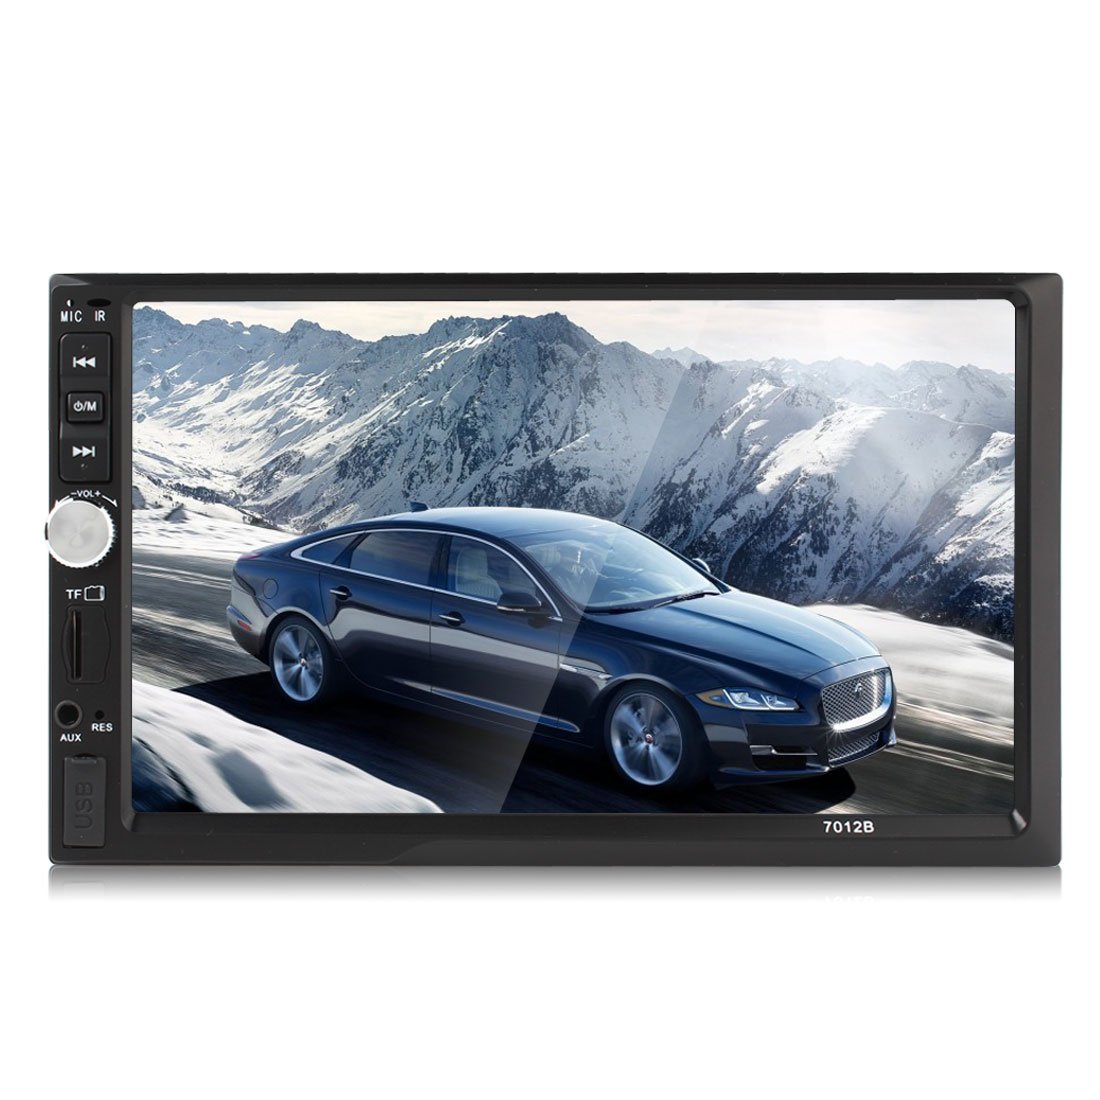 7012b 7 inch hd lcd 2 din bluetooth car stereo mp5 player video images show